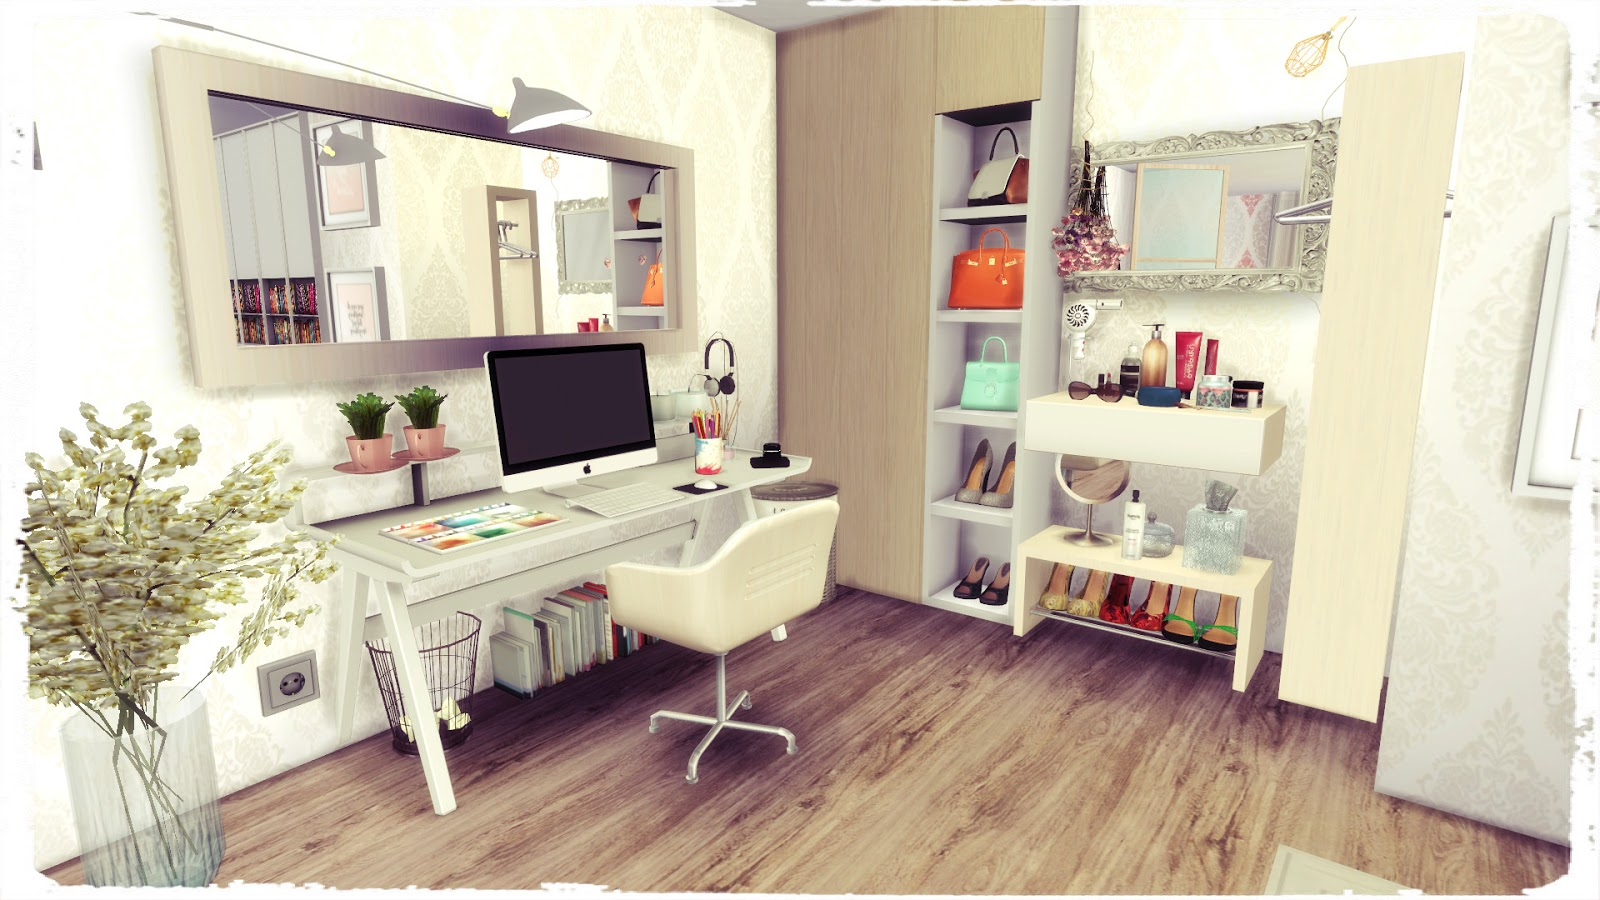 Sims 4 youtuber bedroom dinha - Image for bed room ...